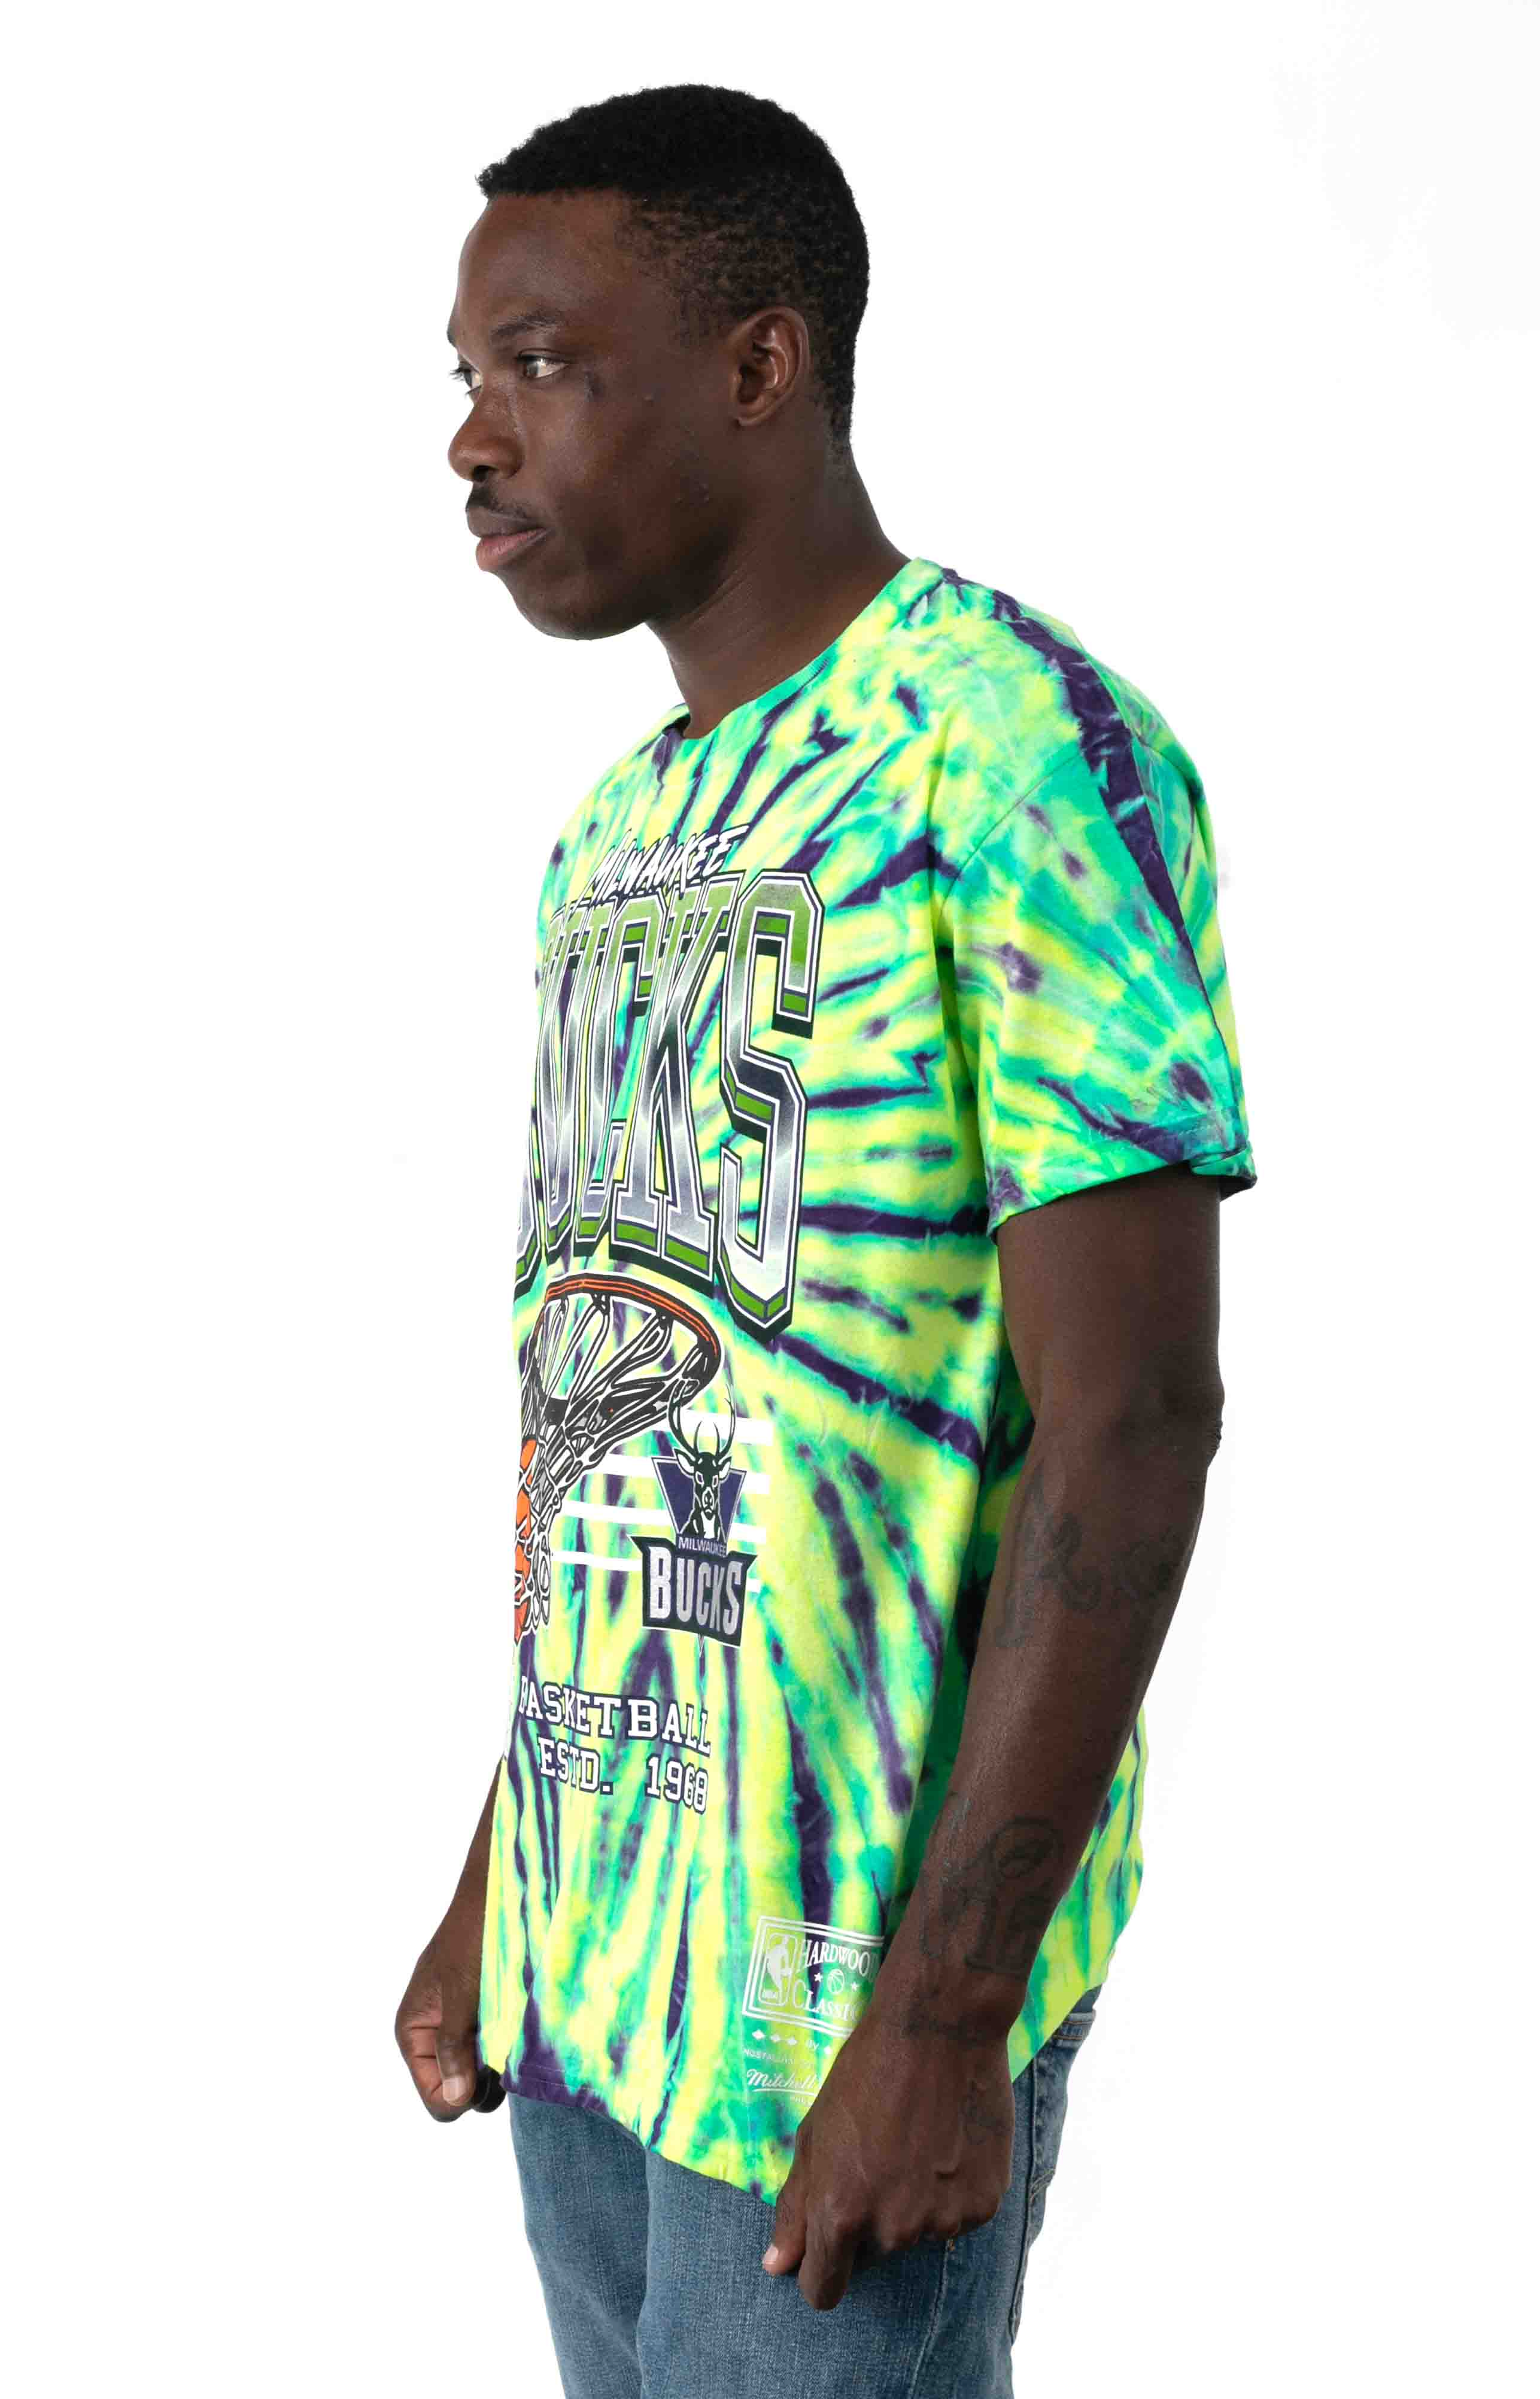 NBA Neon Swish T-Shirt - Bucks  2